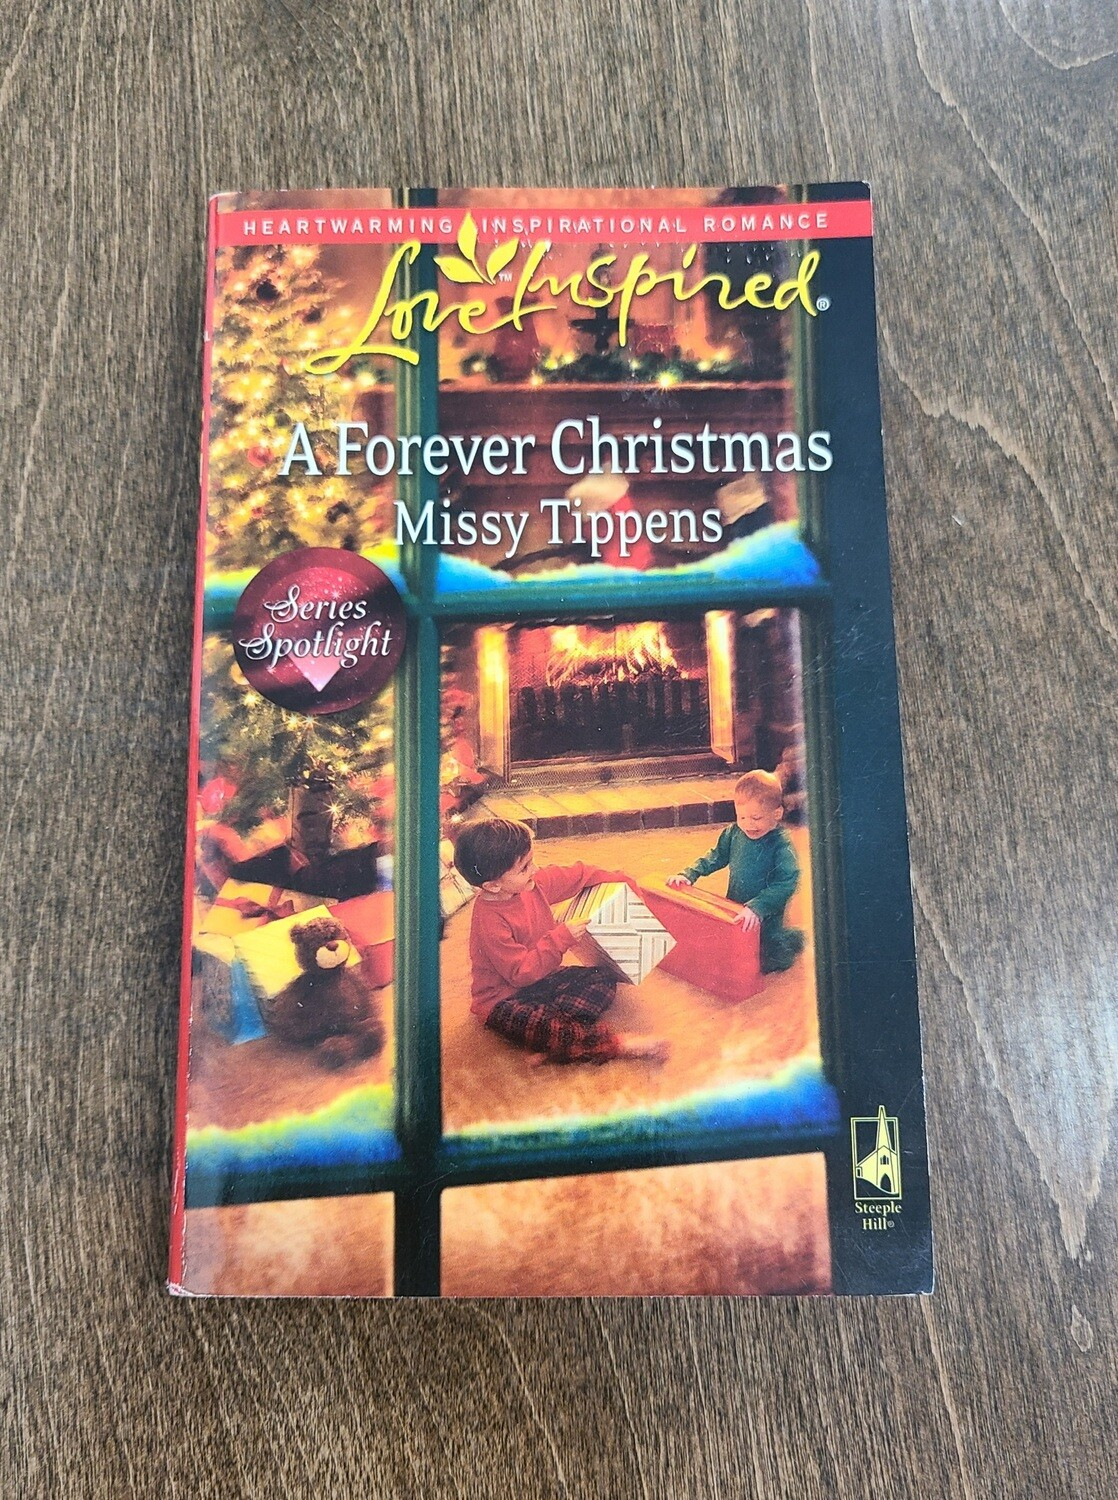 A Forever Christmas by Missy Tippens